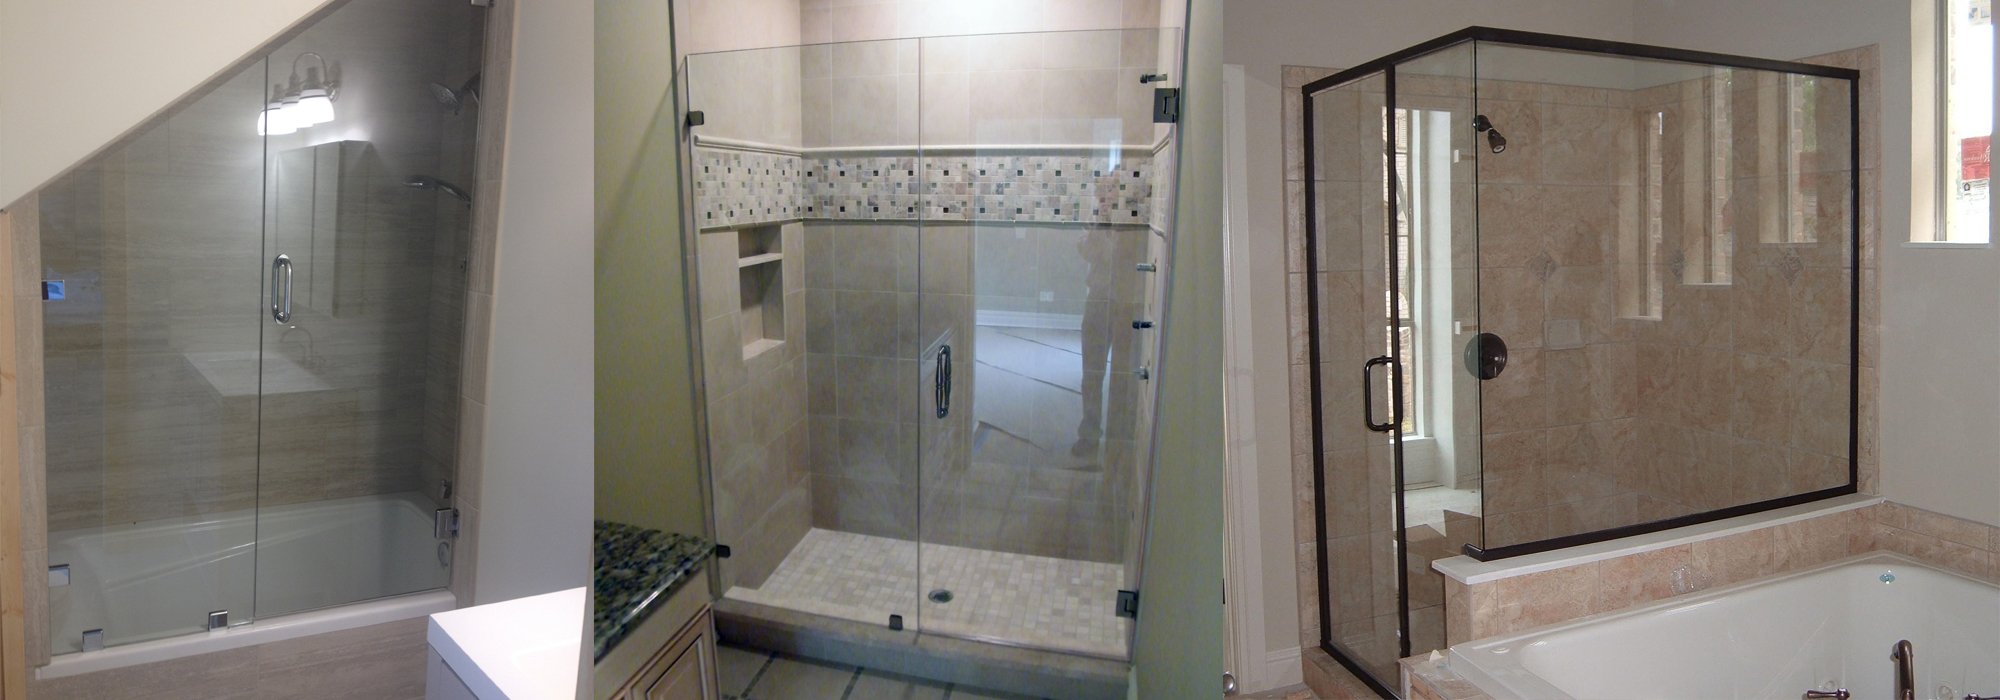 Framed Frameless Shower Doors Virginia Beach Norfolk Chesapeake